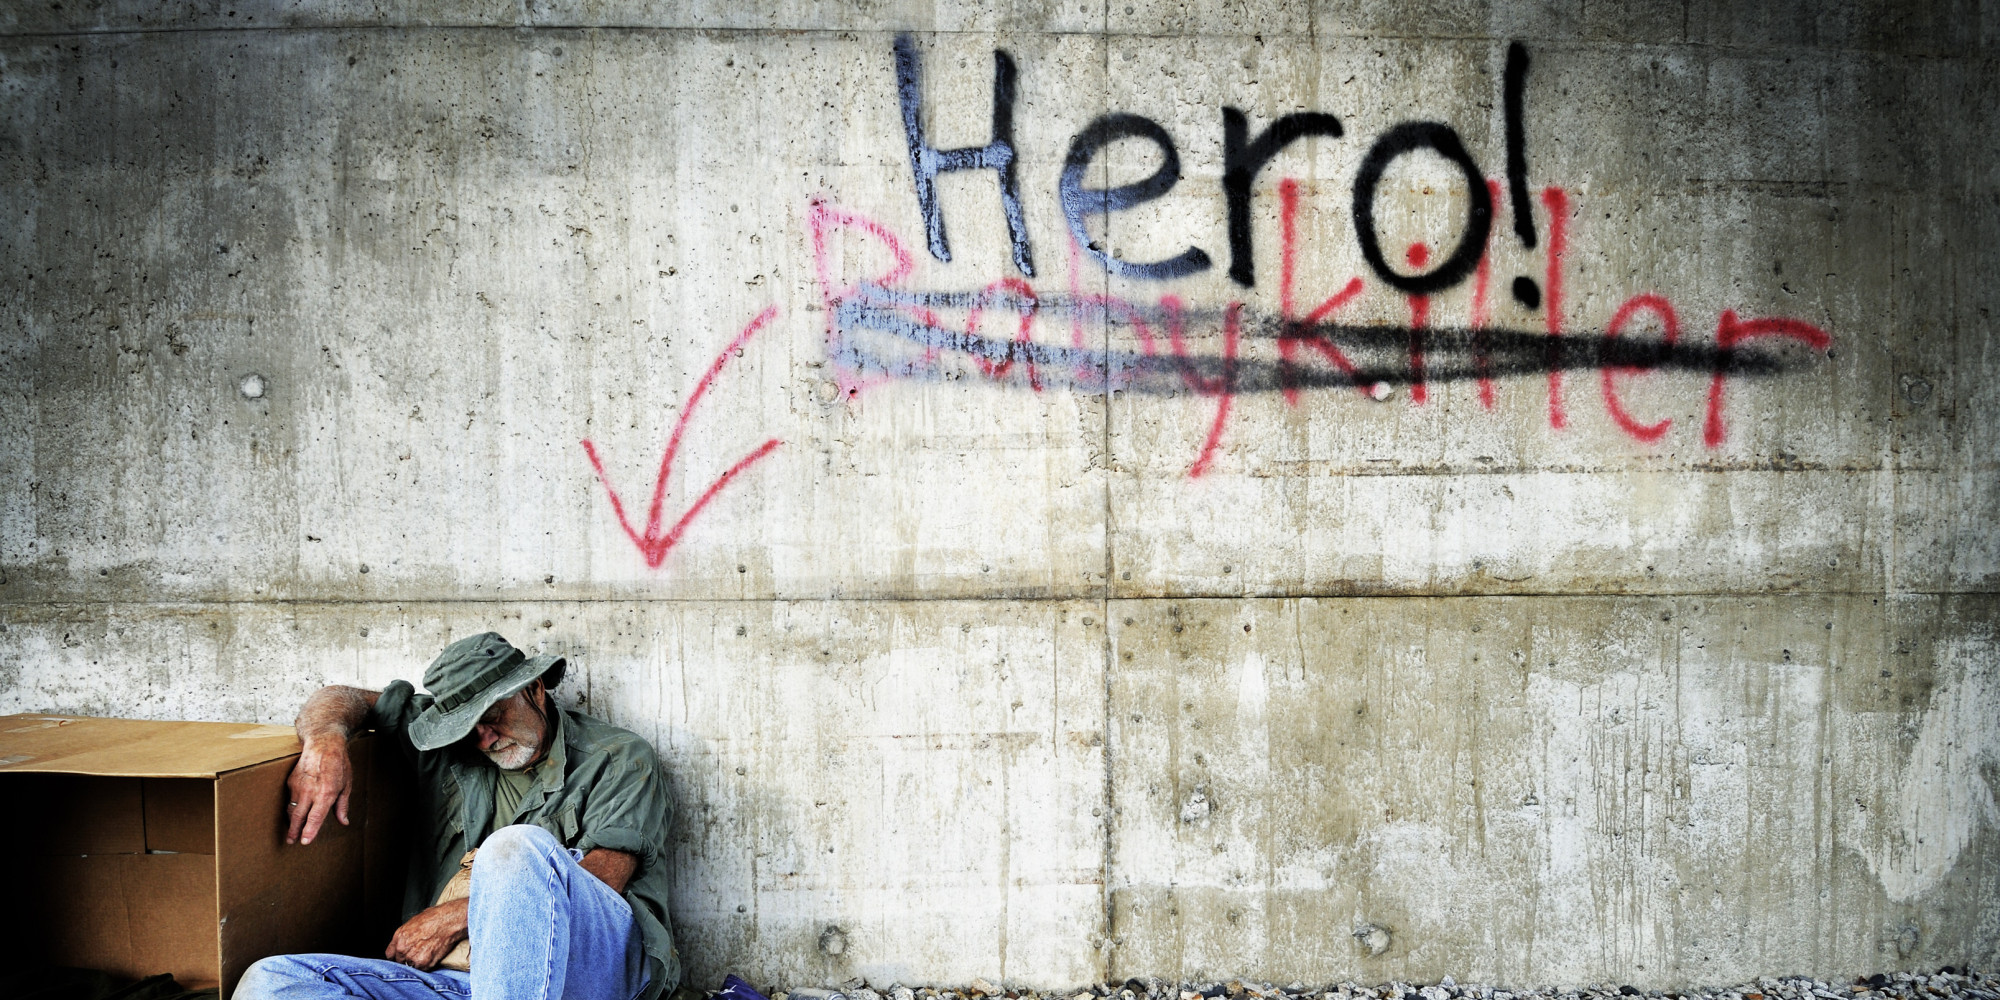 Homeless veterans in the United States